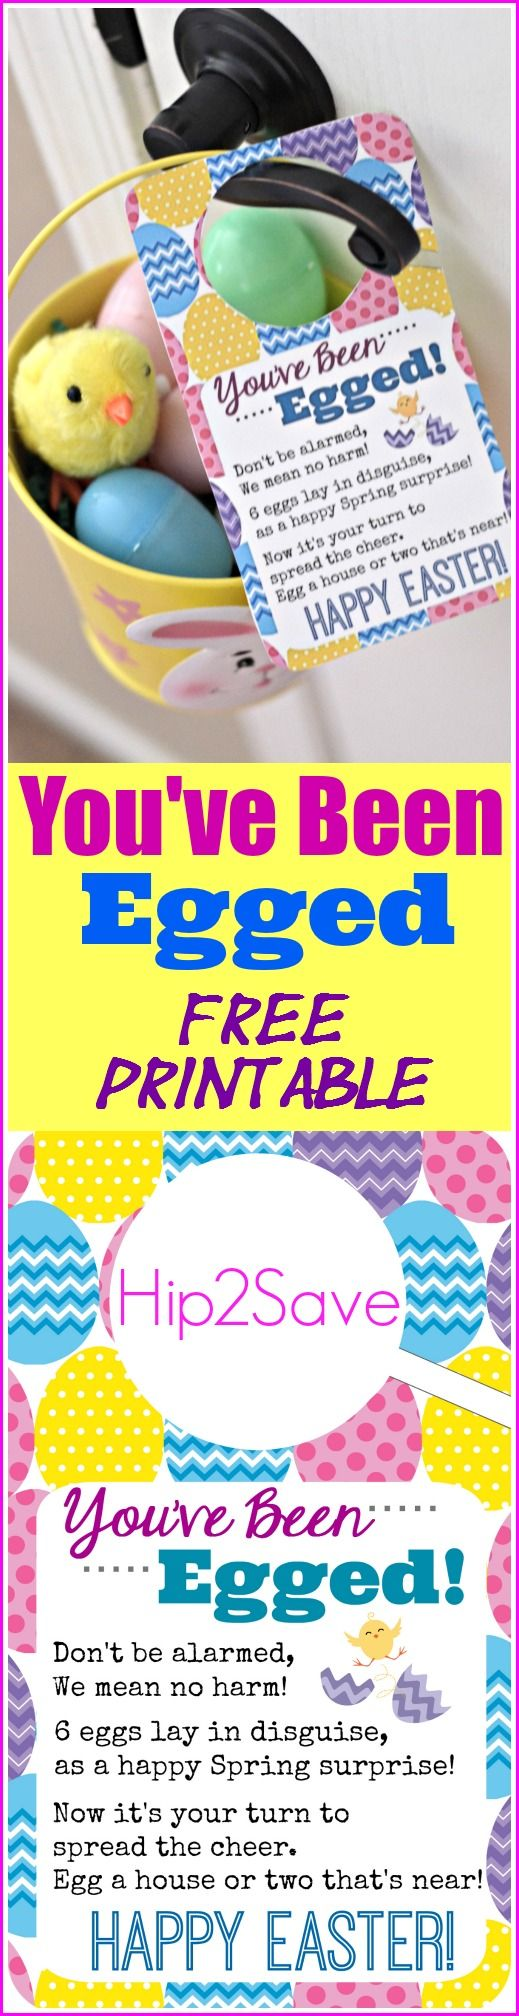 You've Been Egged (Free Printable Easter Idea) brought to you by @hip2save. Easy and fun way to spread Easter cheer to your friends and neighbors!